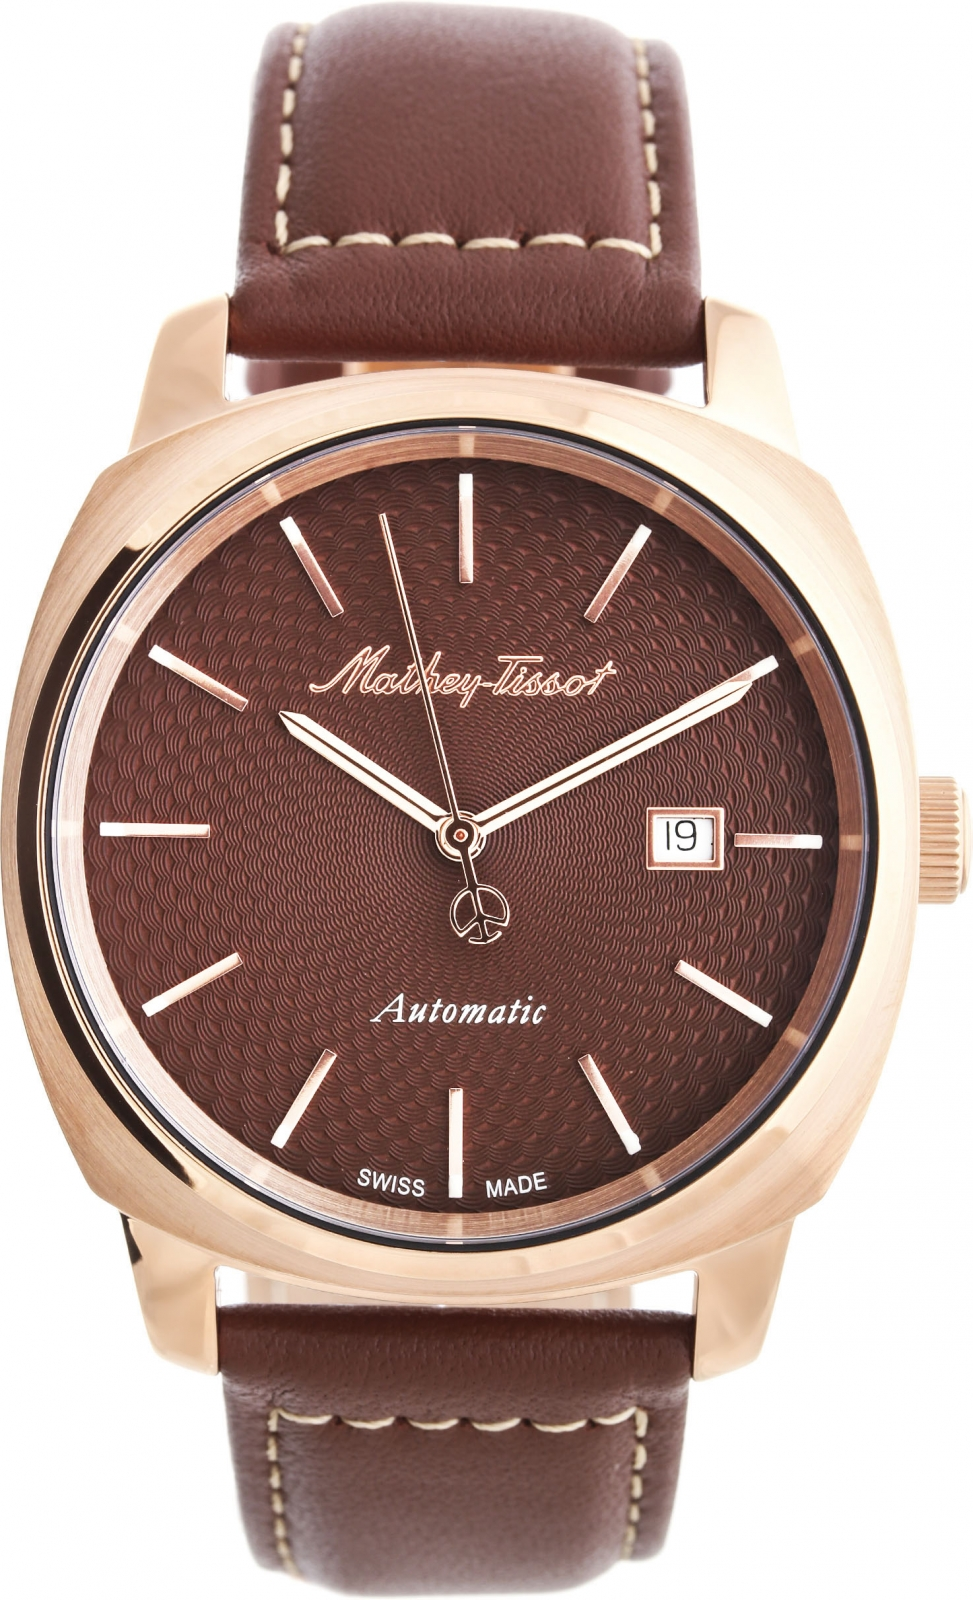 Mathey-Tissot Smart H6940ATPM mathey tissot smart h6940mai